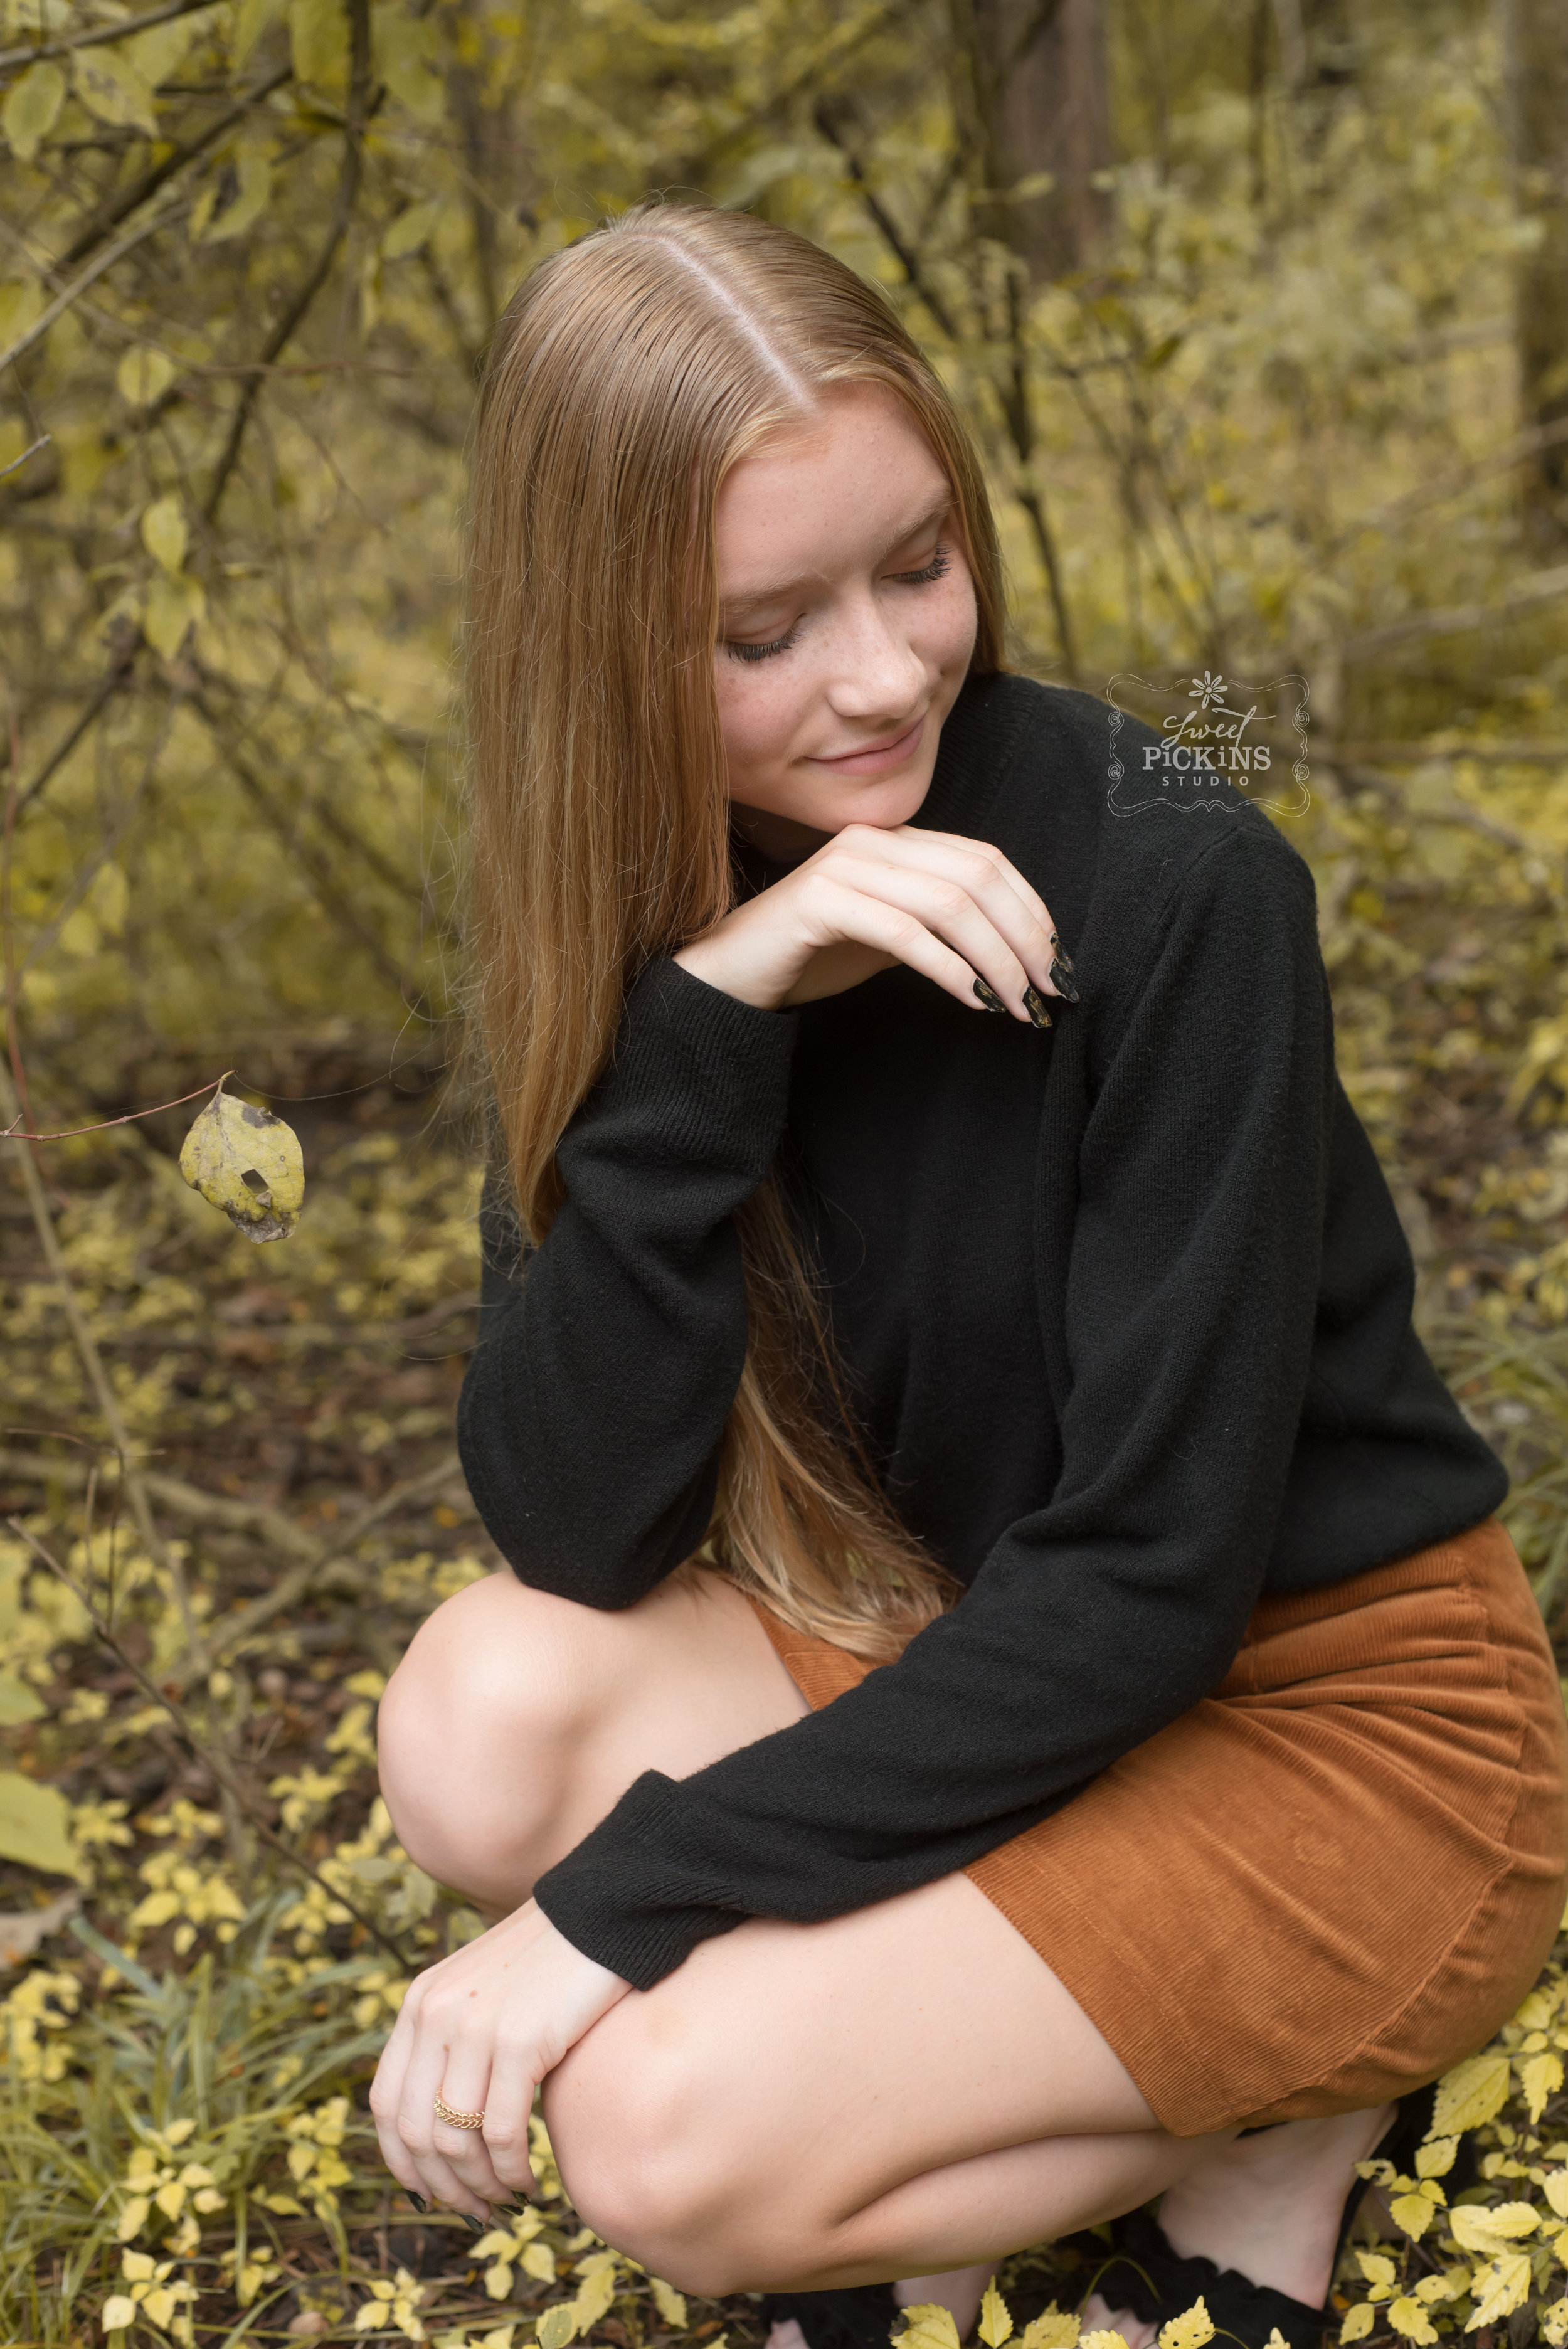 Redhead Teen Modeling in Forest | Photography Session with Sweet Pickins Studio | Peru, Indiana